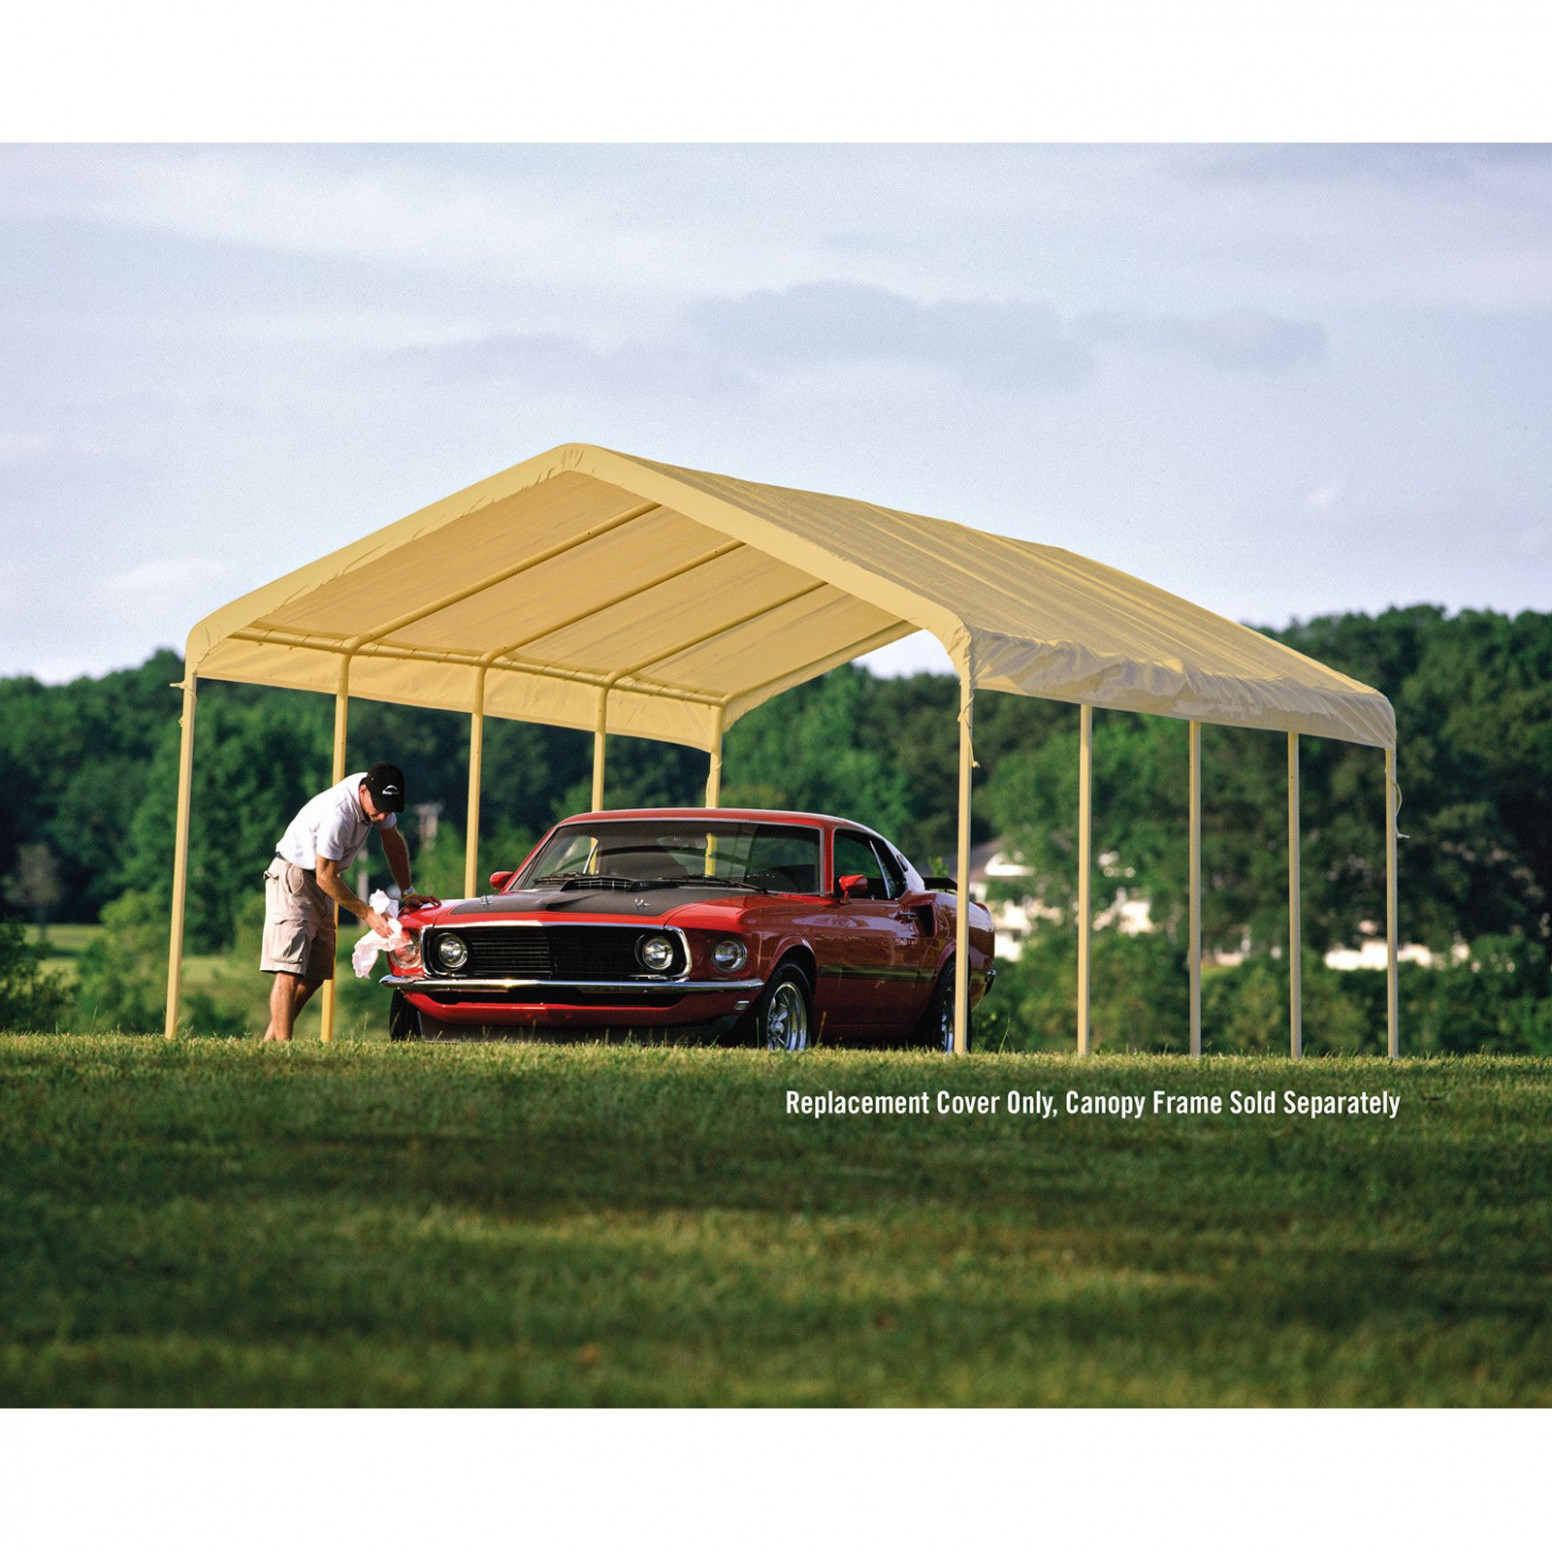 Details About 8 X 8 Ft Canopy Replacement Cover Waterproof Outdoor Shade Carport Gazebo Tent Carport Canopy Replacement Covers